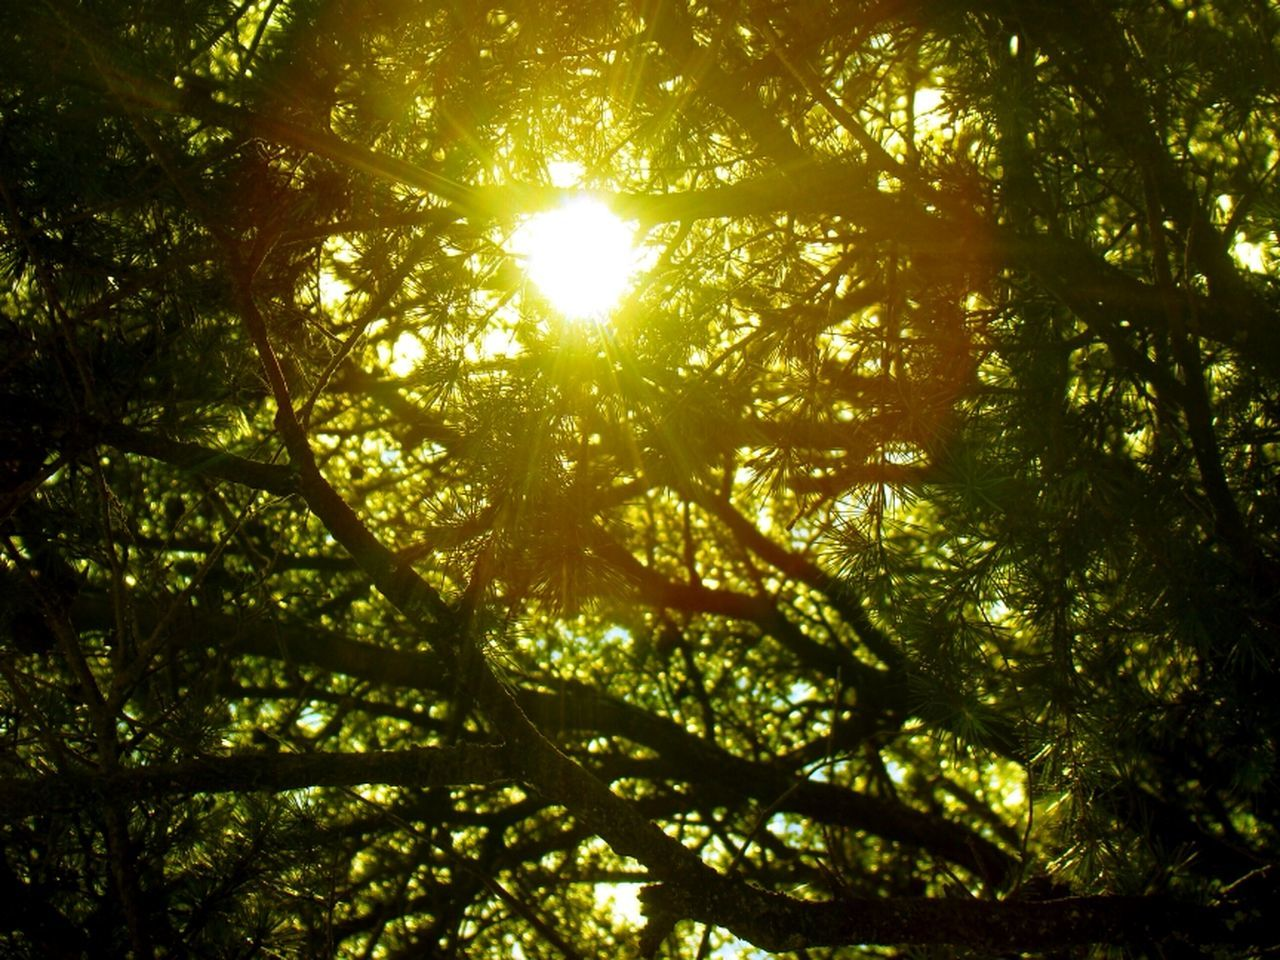 tree, nature, sunlight, sunbeam, low angle view, growth, sun, beauty in nature, day, outdoors, branch, forest, no people